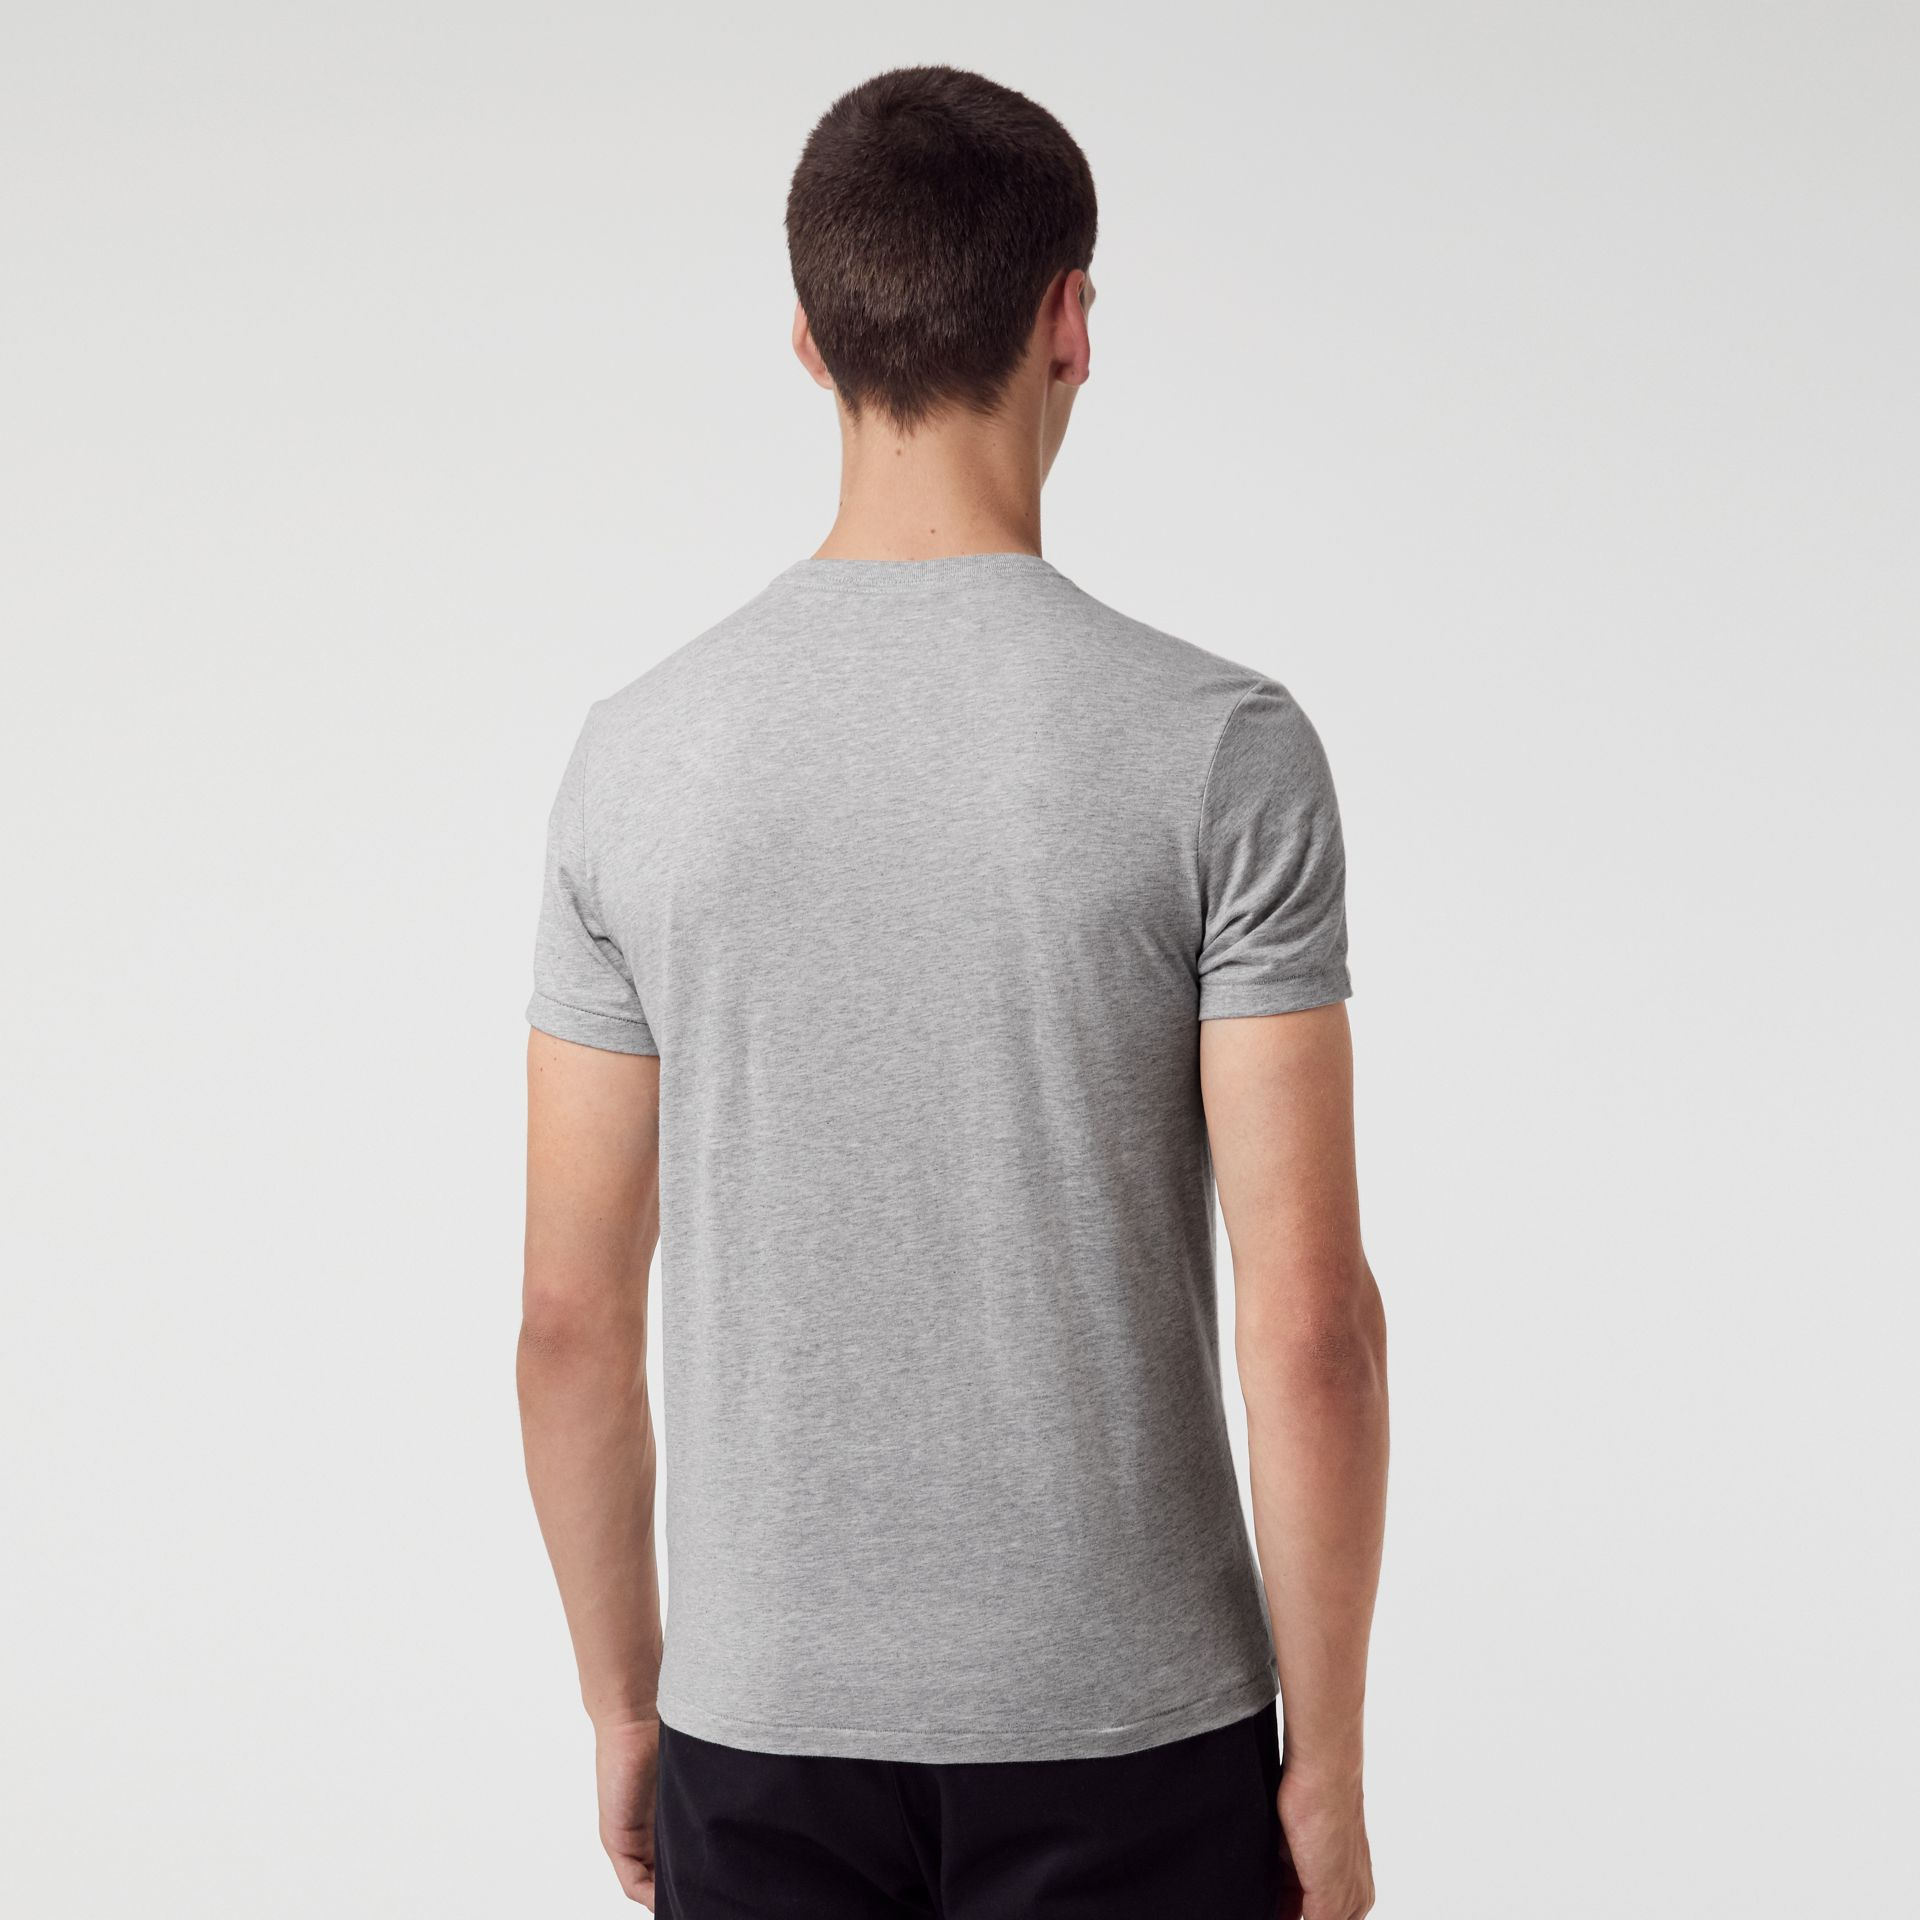 Cotton Jersey V-neck T-shirt in Pale Grey Melange - Men | Burberry Hong Kong S.A.R - gallery image 2